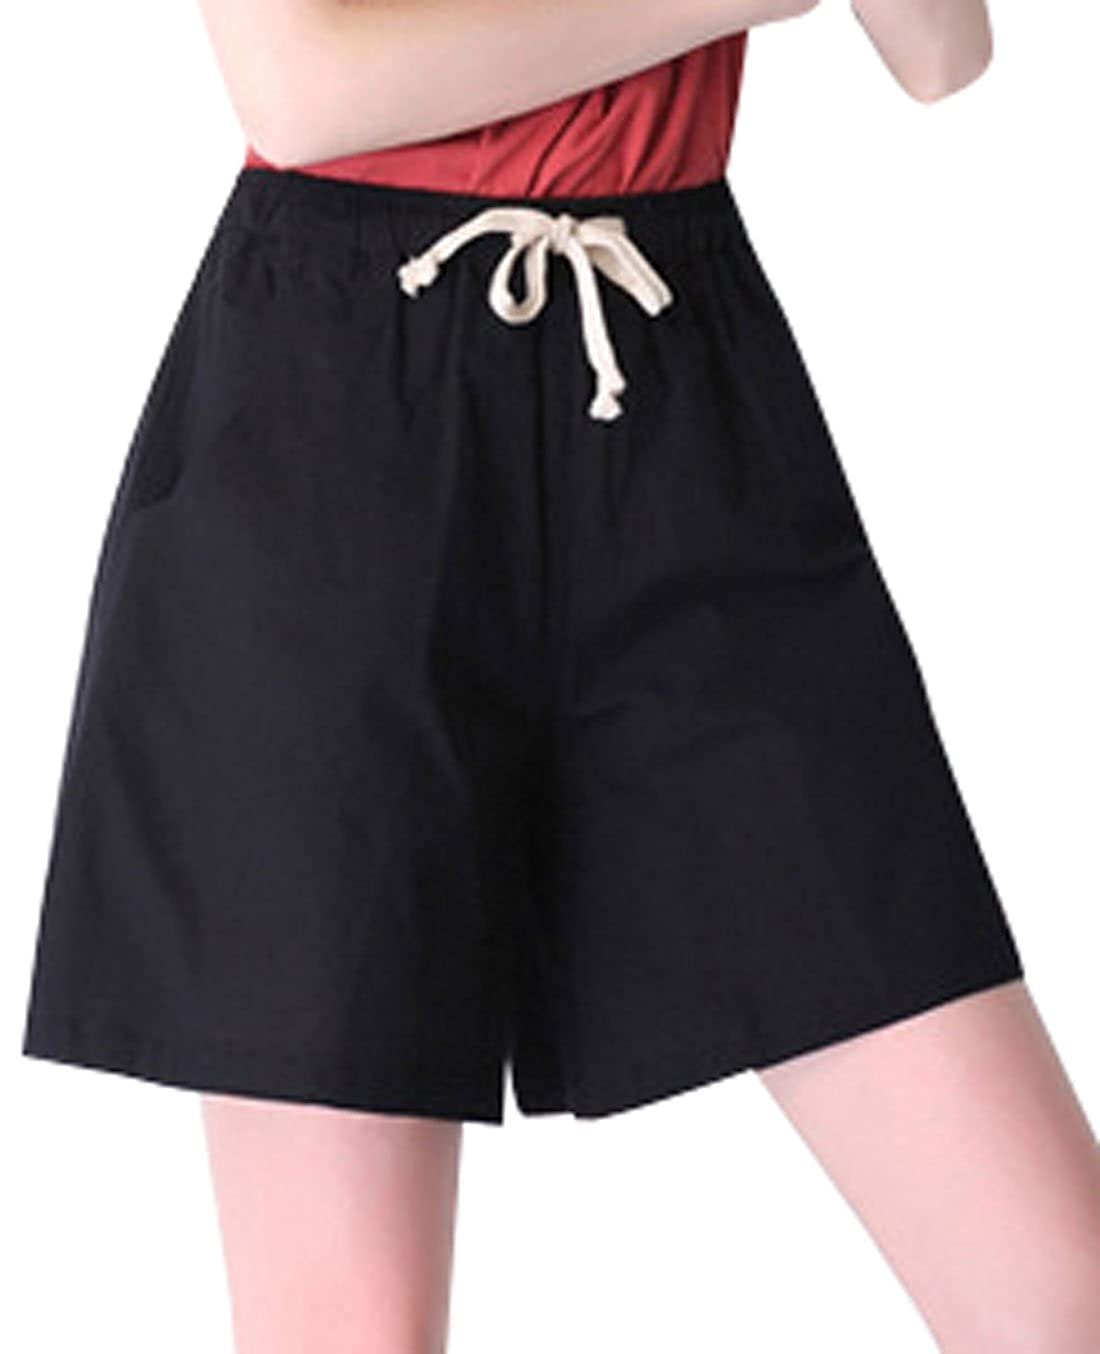 M Black Qiuse Women's Casual Wide Legs Elastic Waist with Drawstring Bermuda Shorts